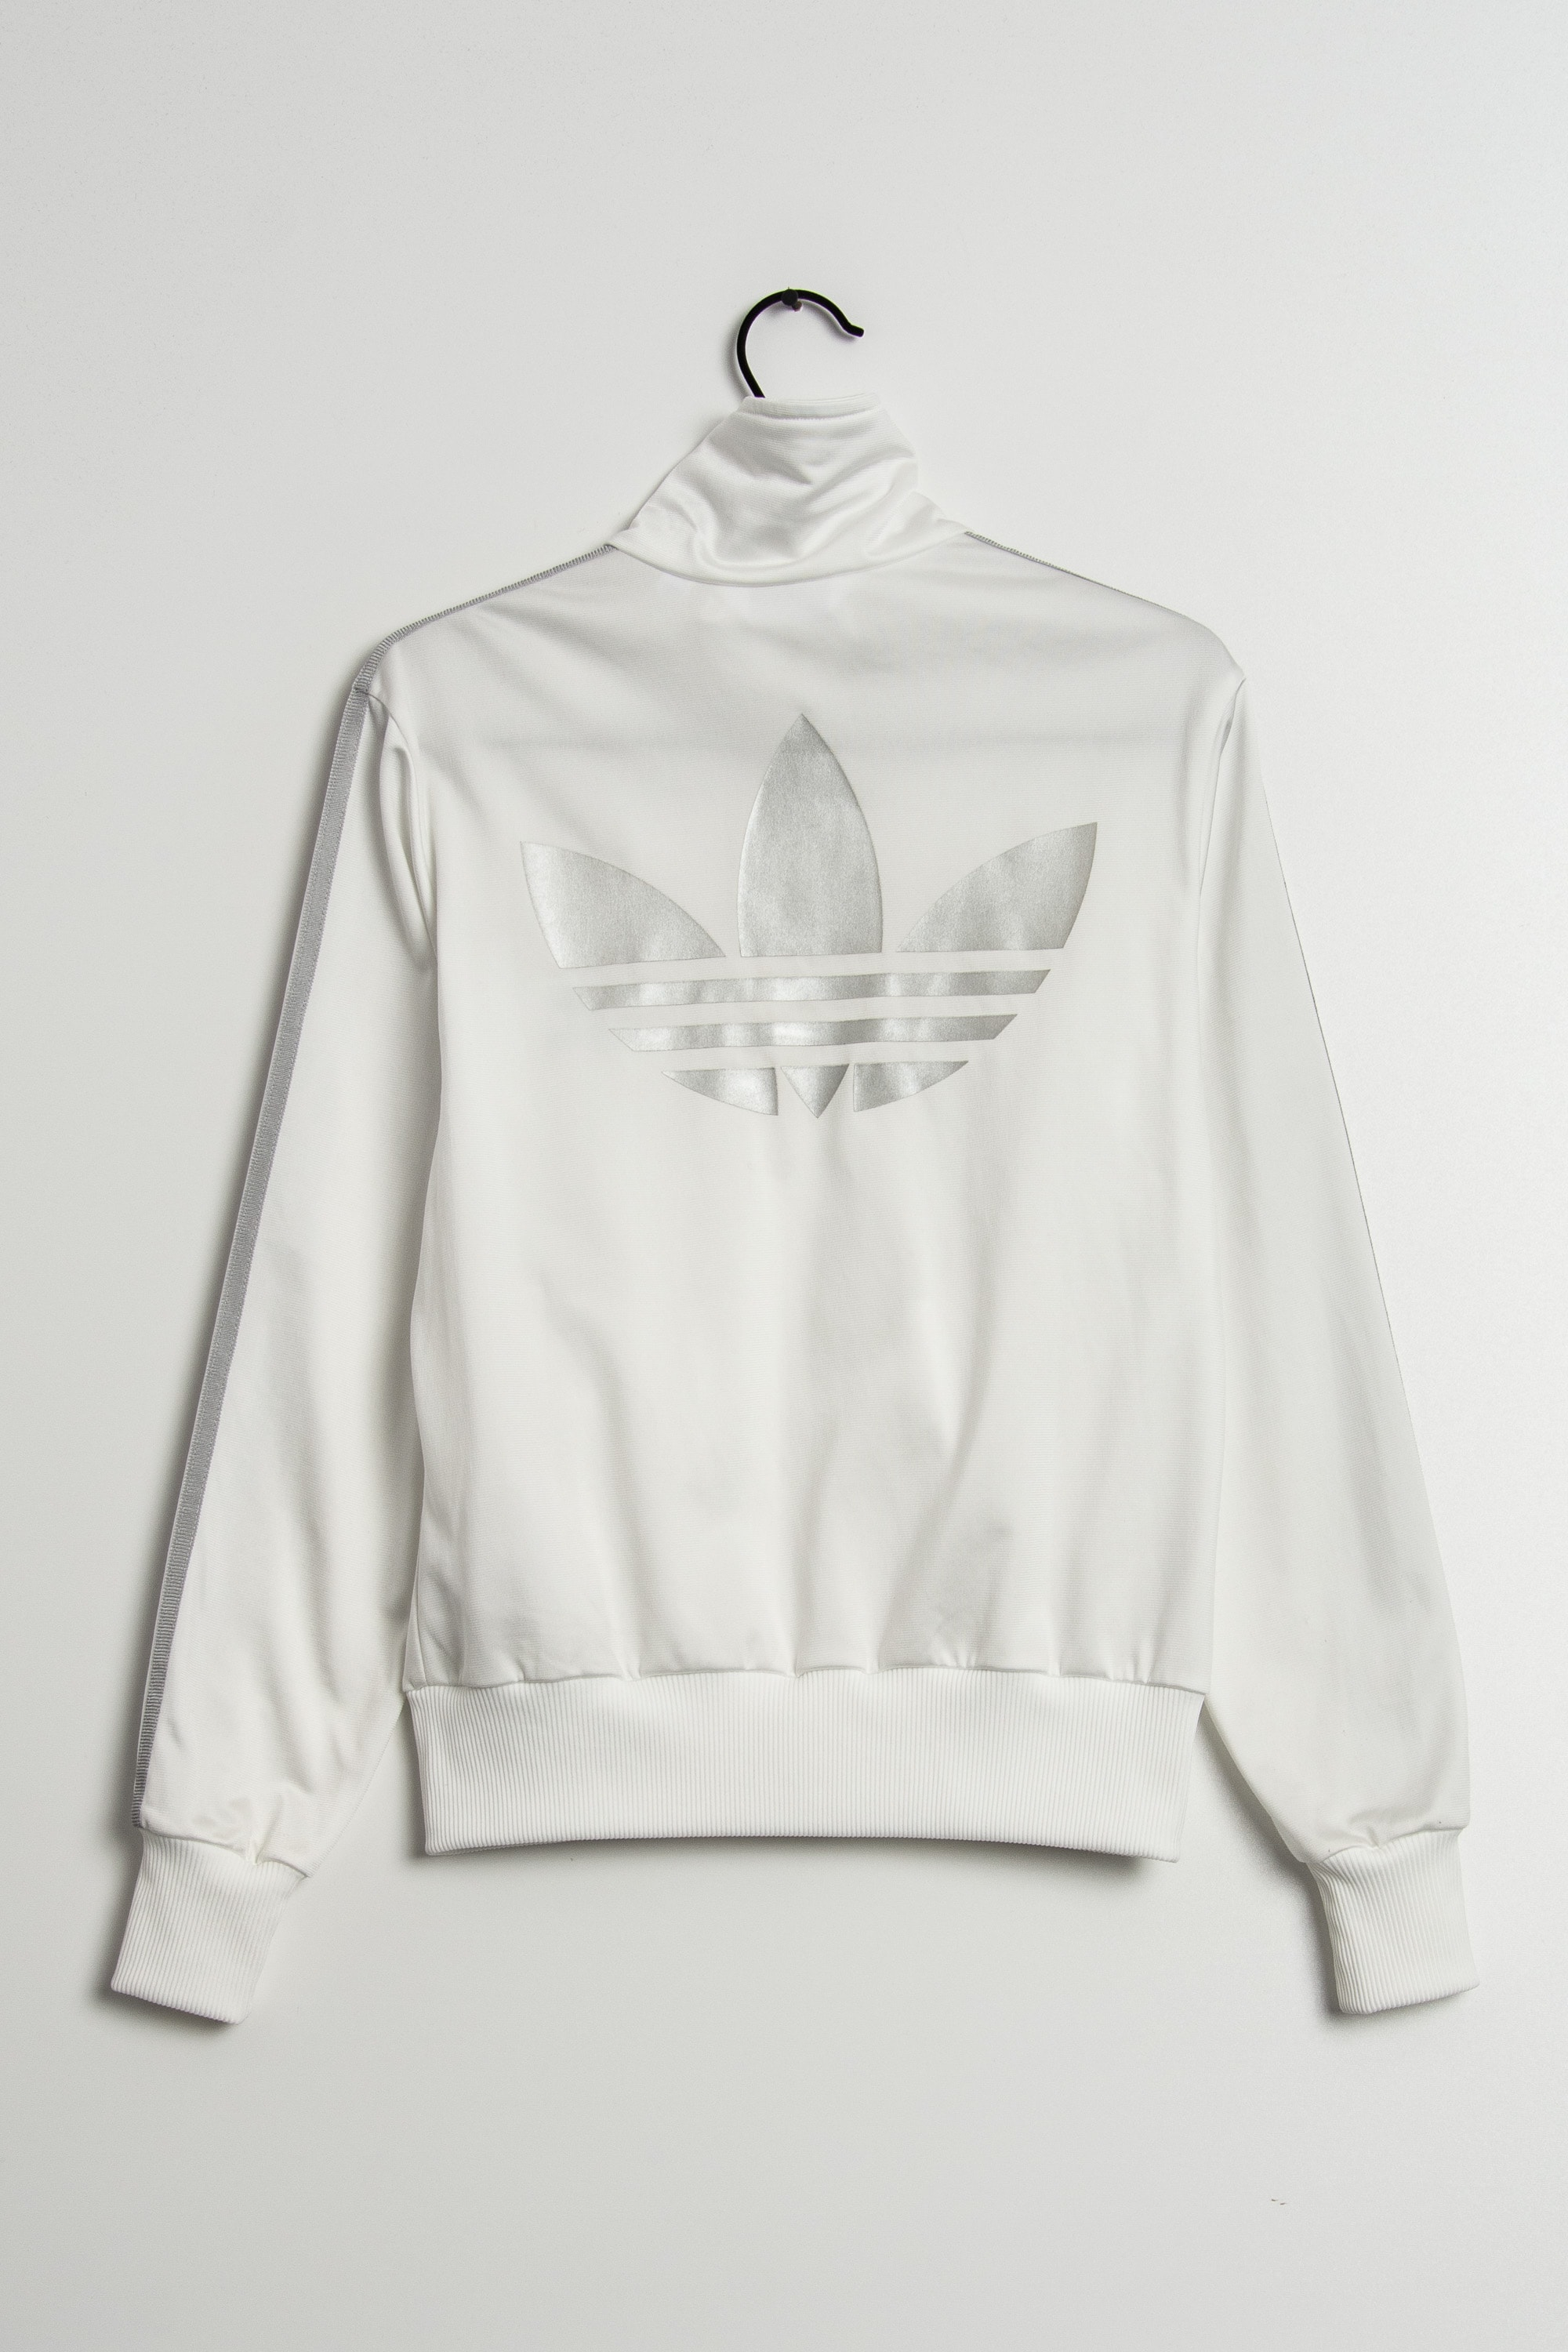 adidas Originals Sweat / Fleece Weiß Gr.M